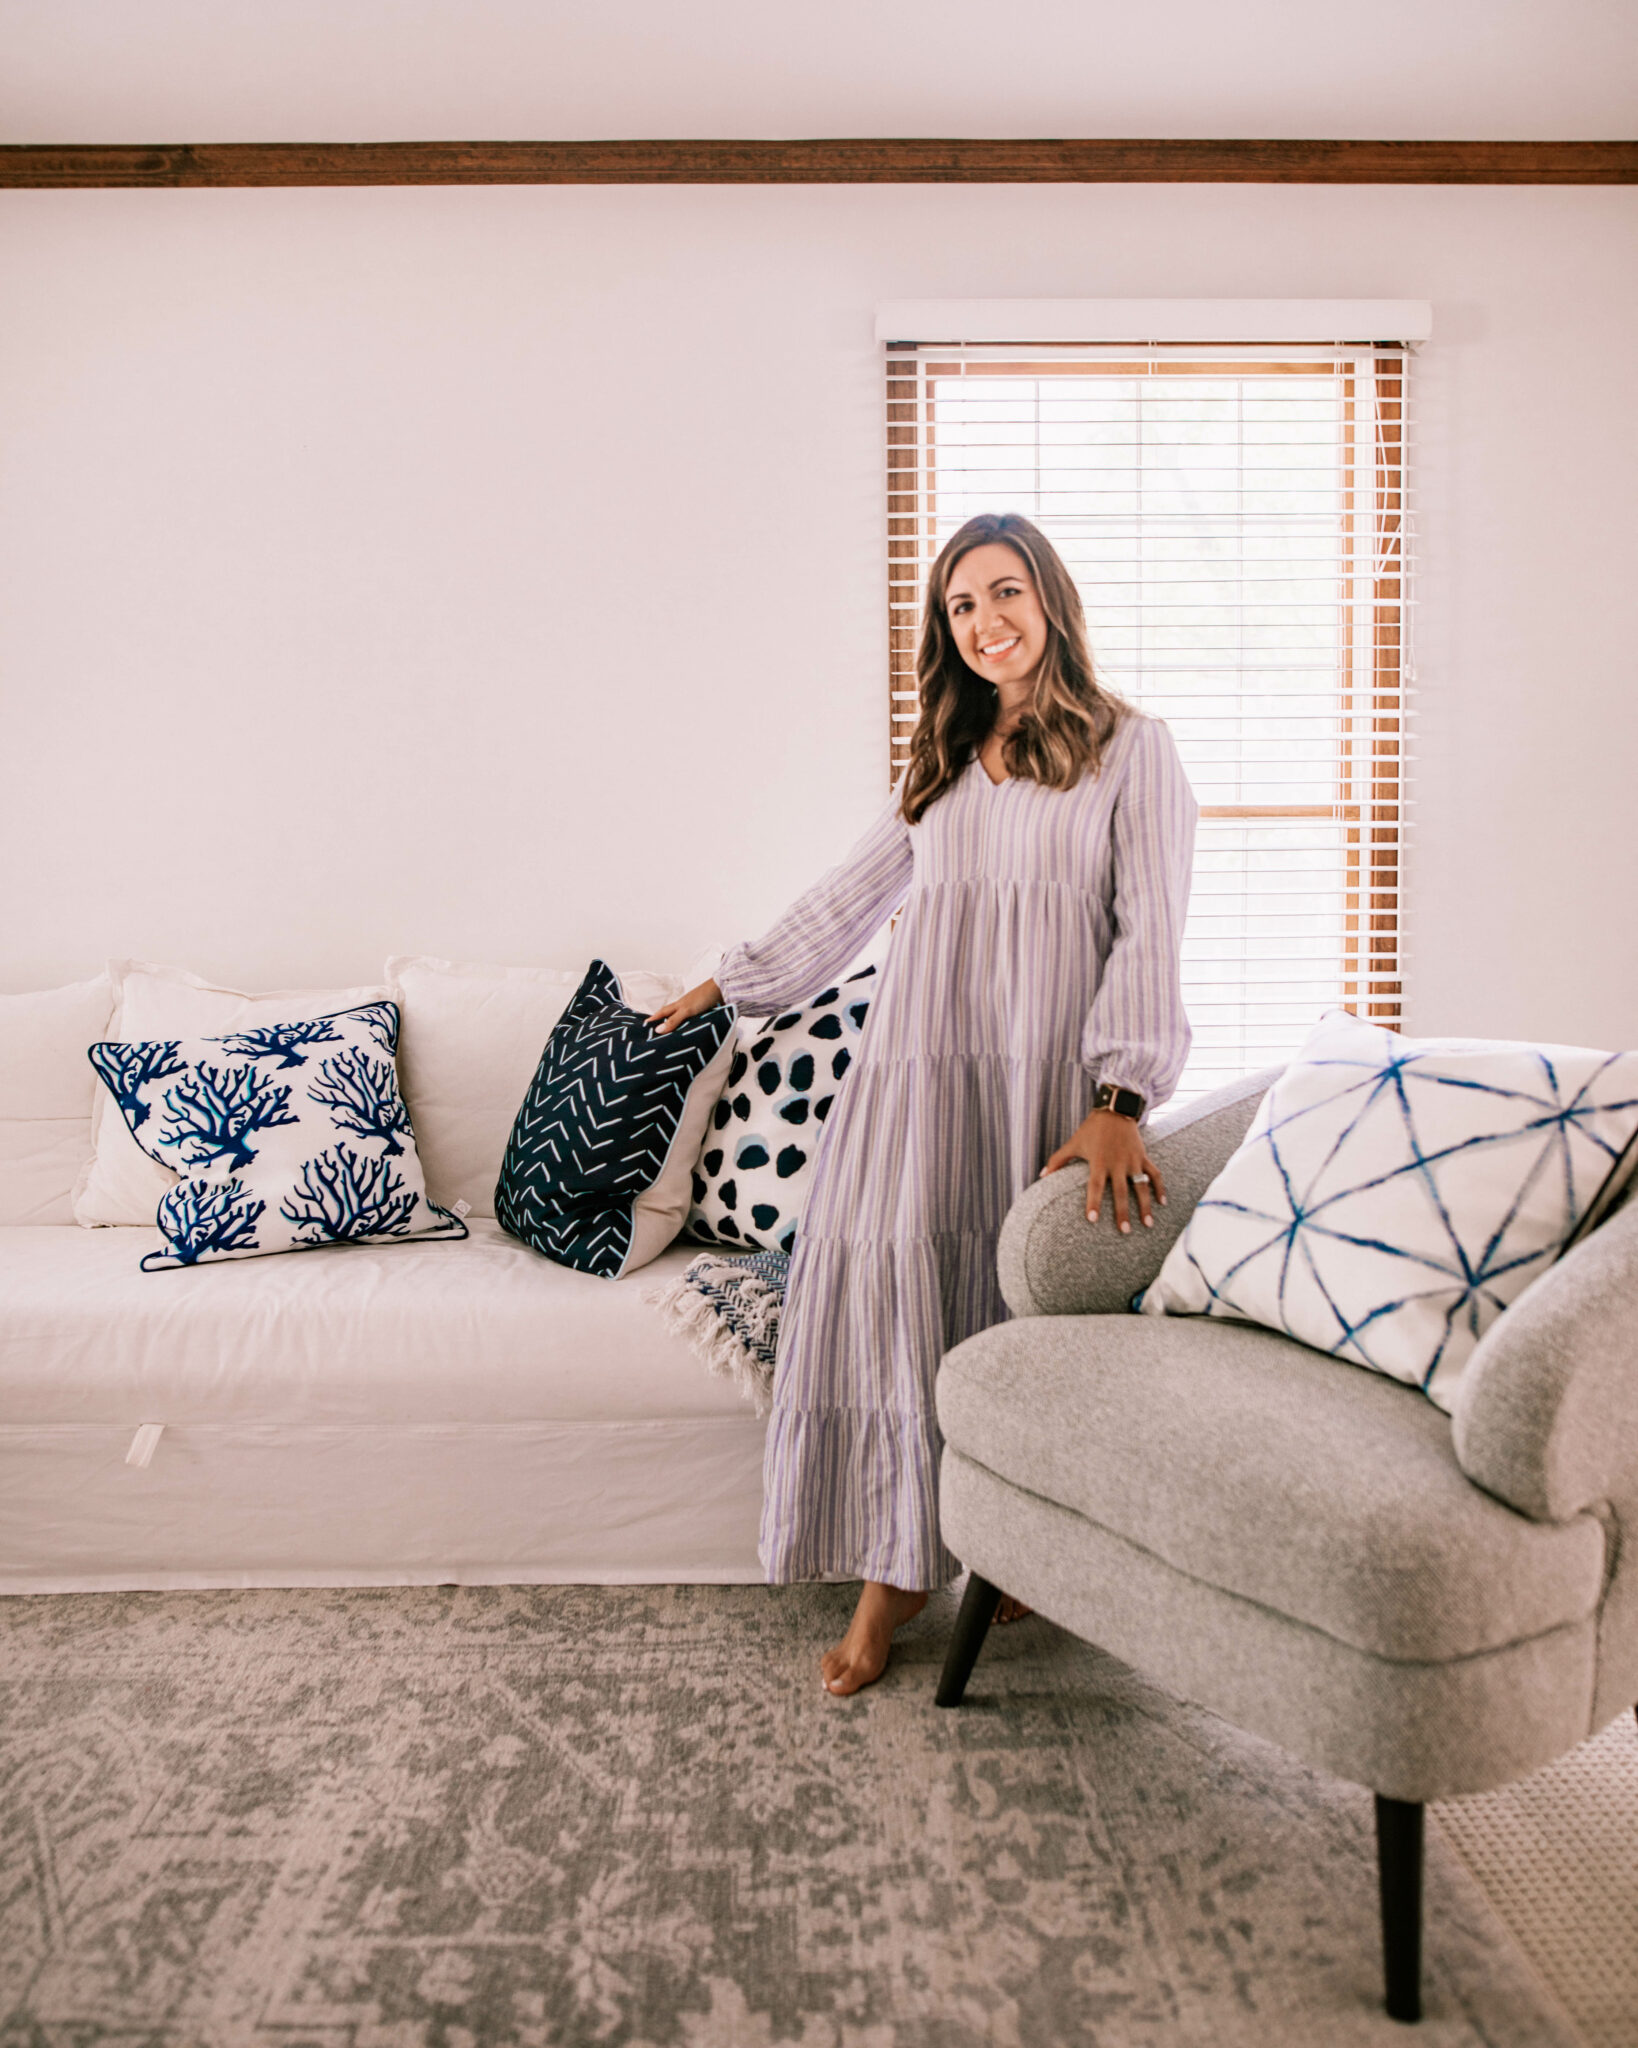 Thomasville Furniture by popular Chicago life and style blog, Glass of Glam: image of a woman wearing a purple stripe maxi dress and standing in a living room decorated with a white couch, blue, grey and white accent rug, grey armchair, and blue and white throw pillows.